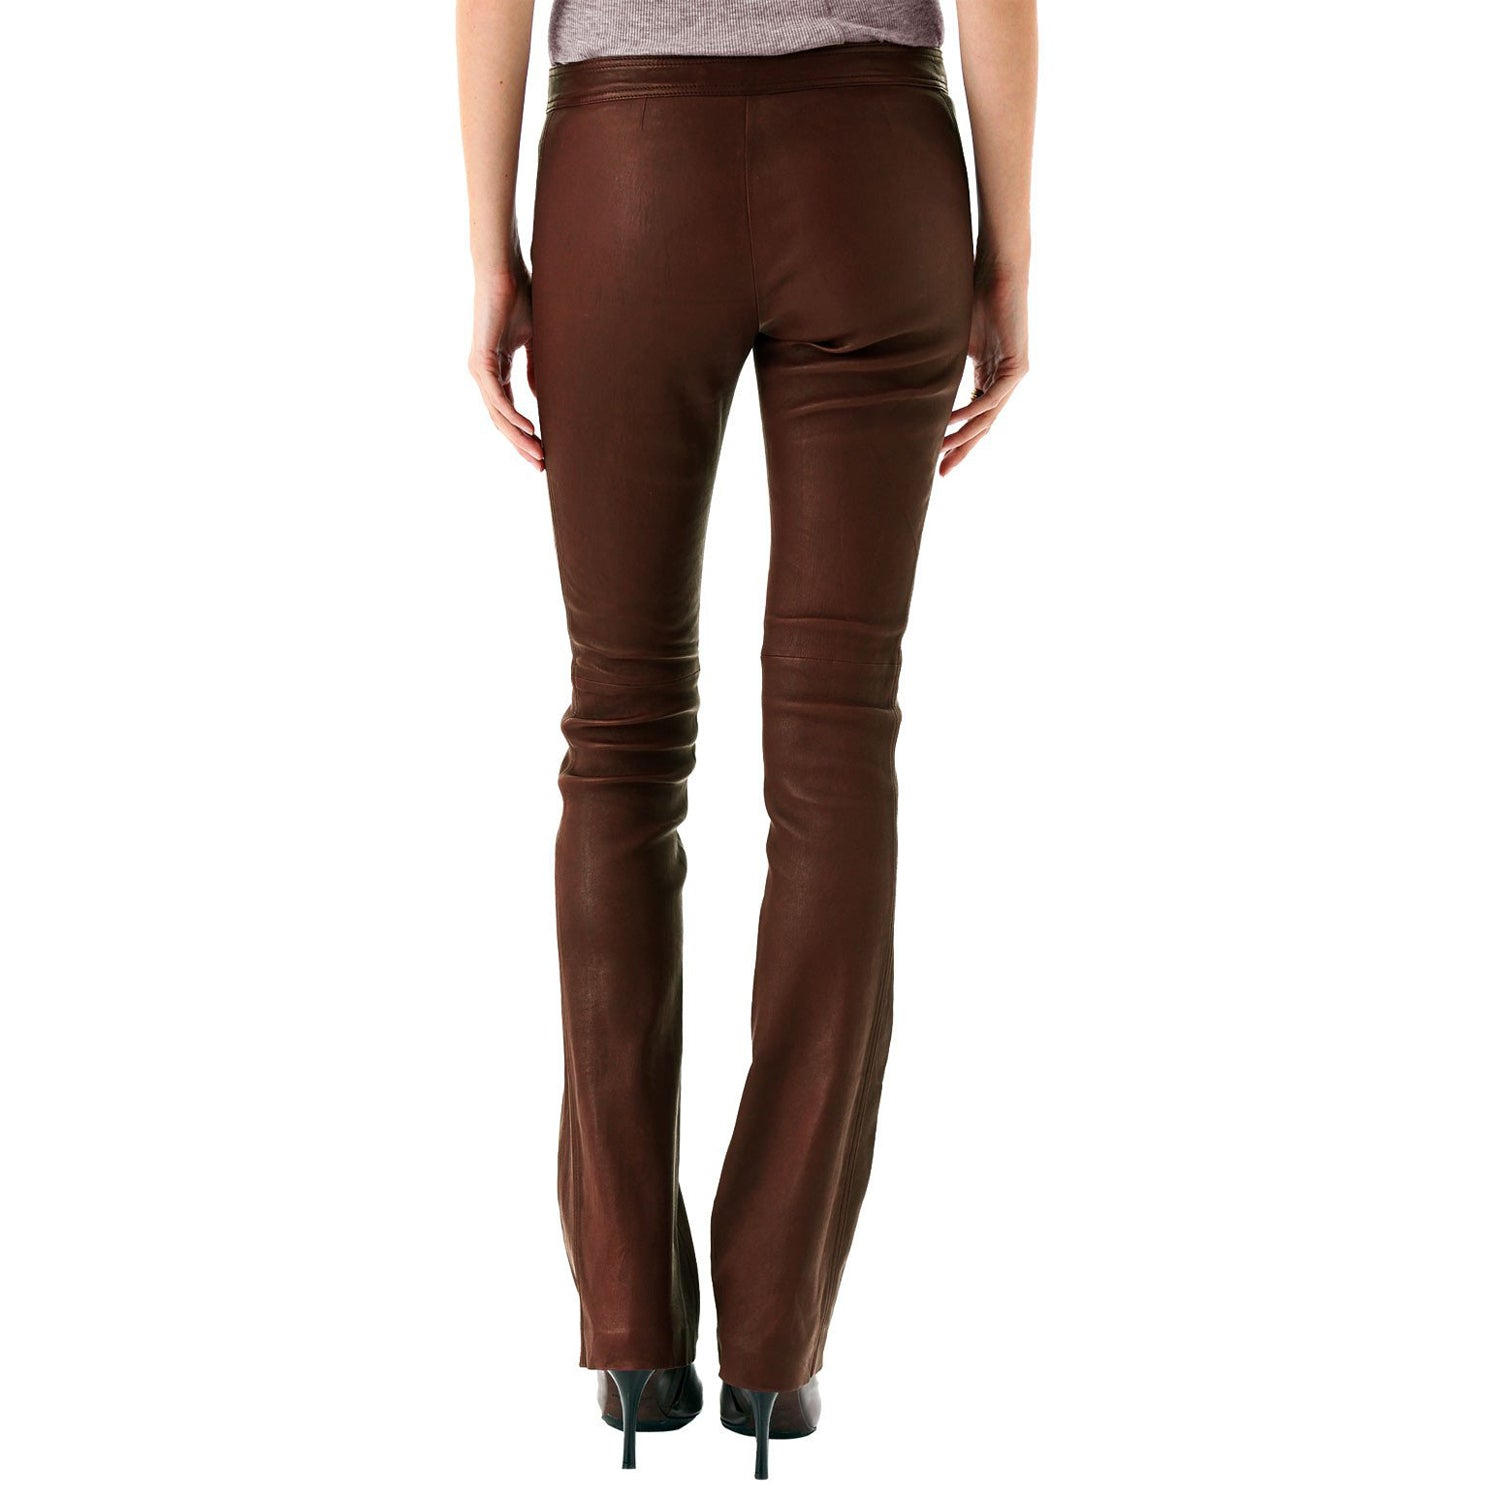 Business elegant leather pants (style #14) - Lusso Leather - 2